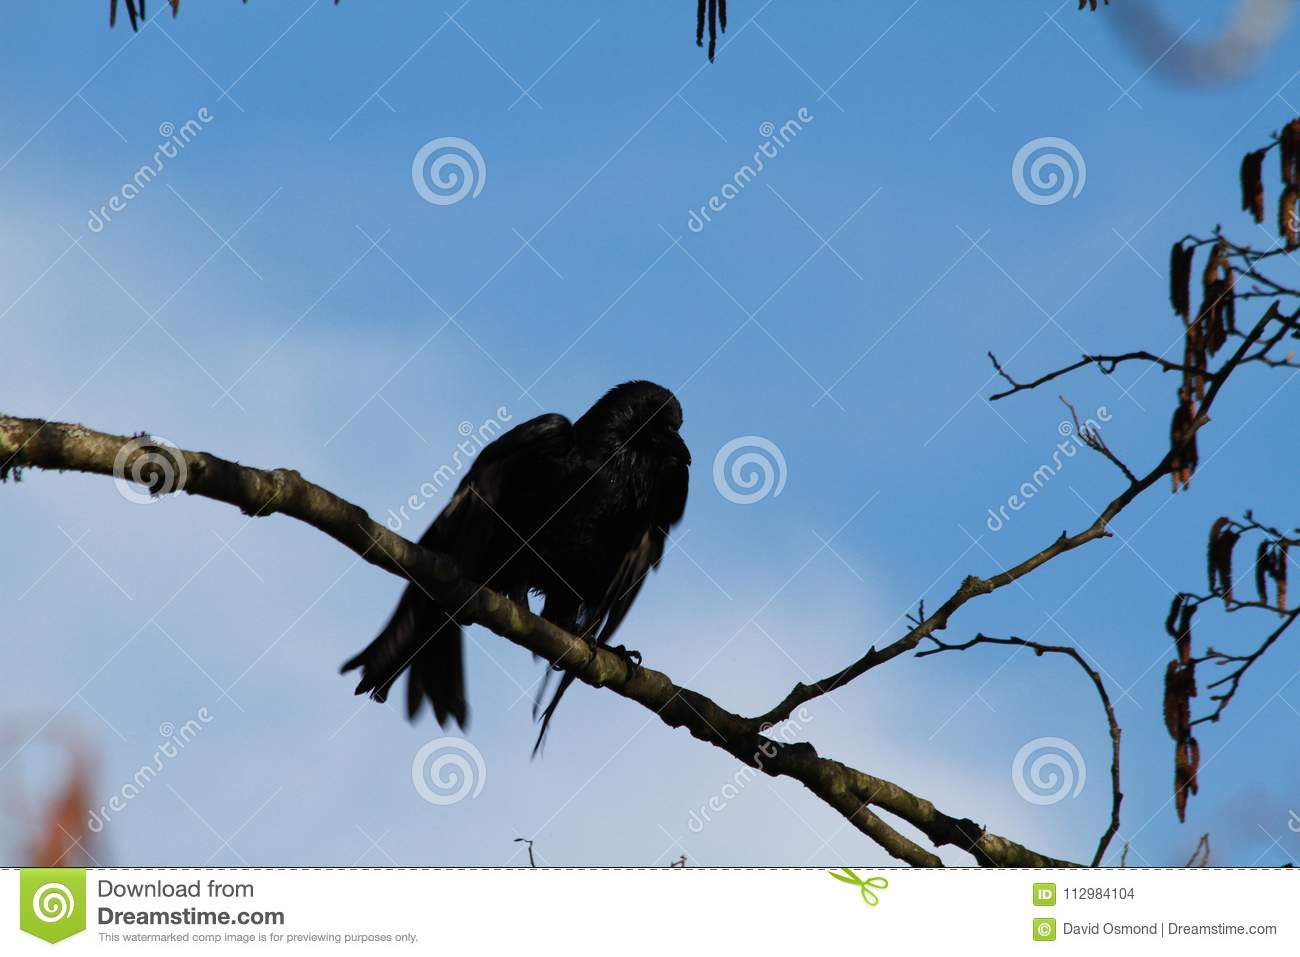 A crow perched on a branch